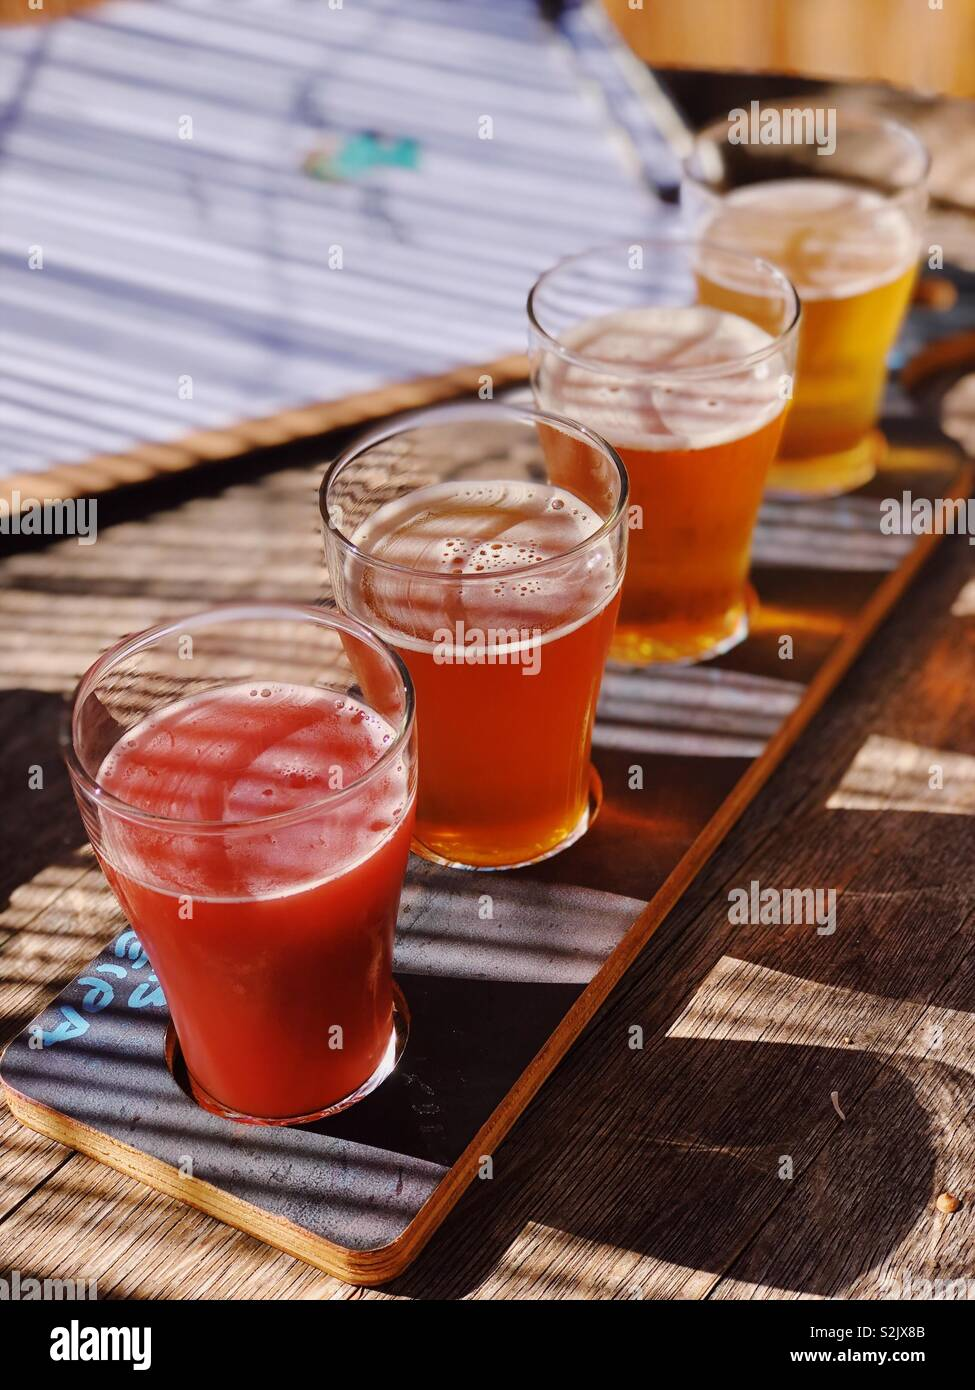 Beer paddle - Stock Image